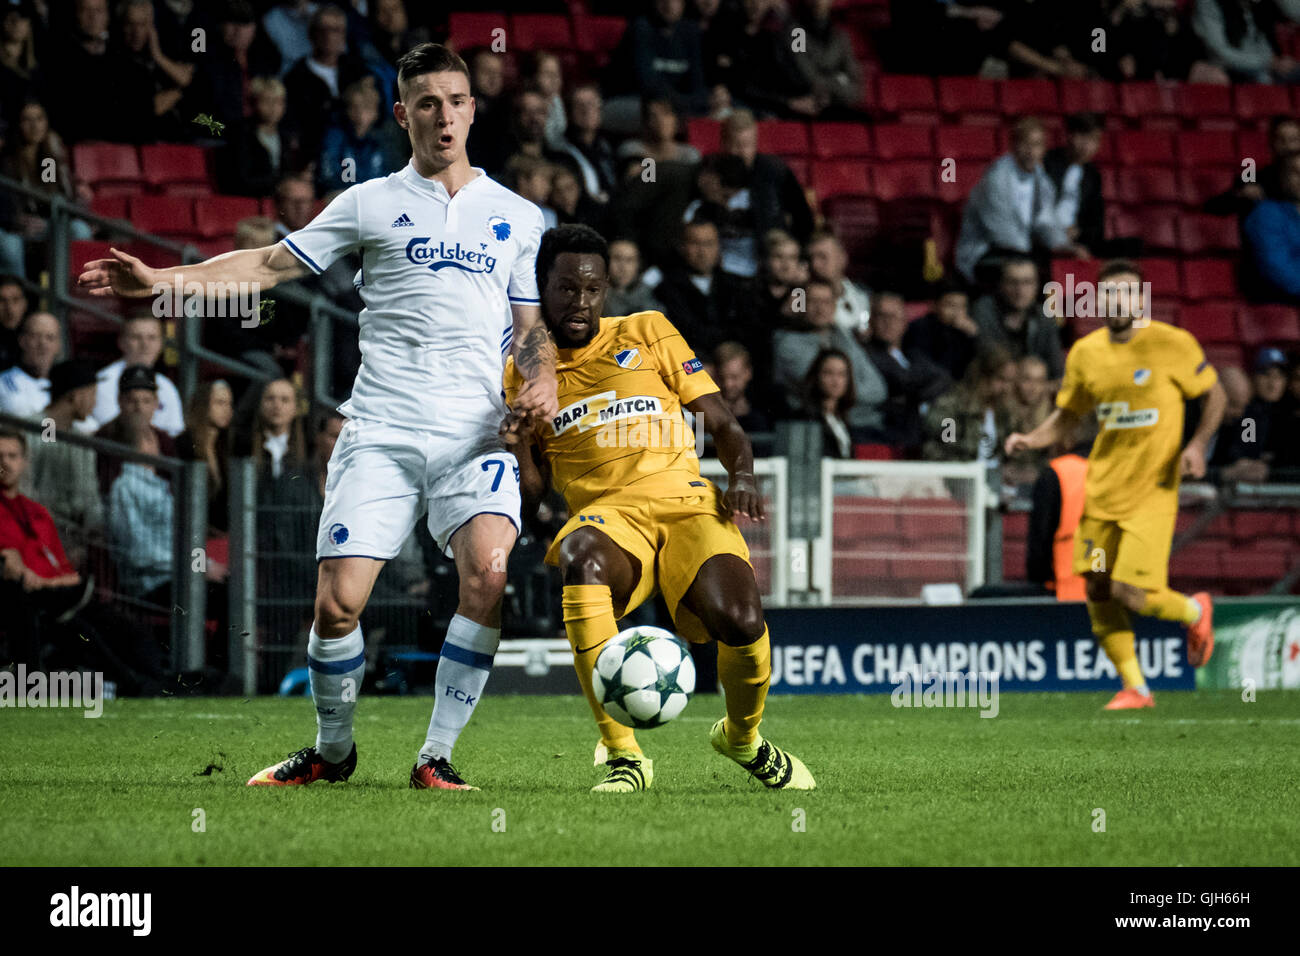 Denmark, Copenhagen, August 16th 2016. Benjamin Verbic (7) of FC Copenhagen during the UEFA Champions League play Stock Photo